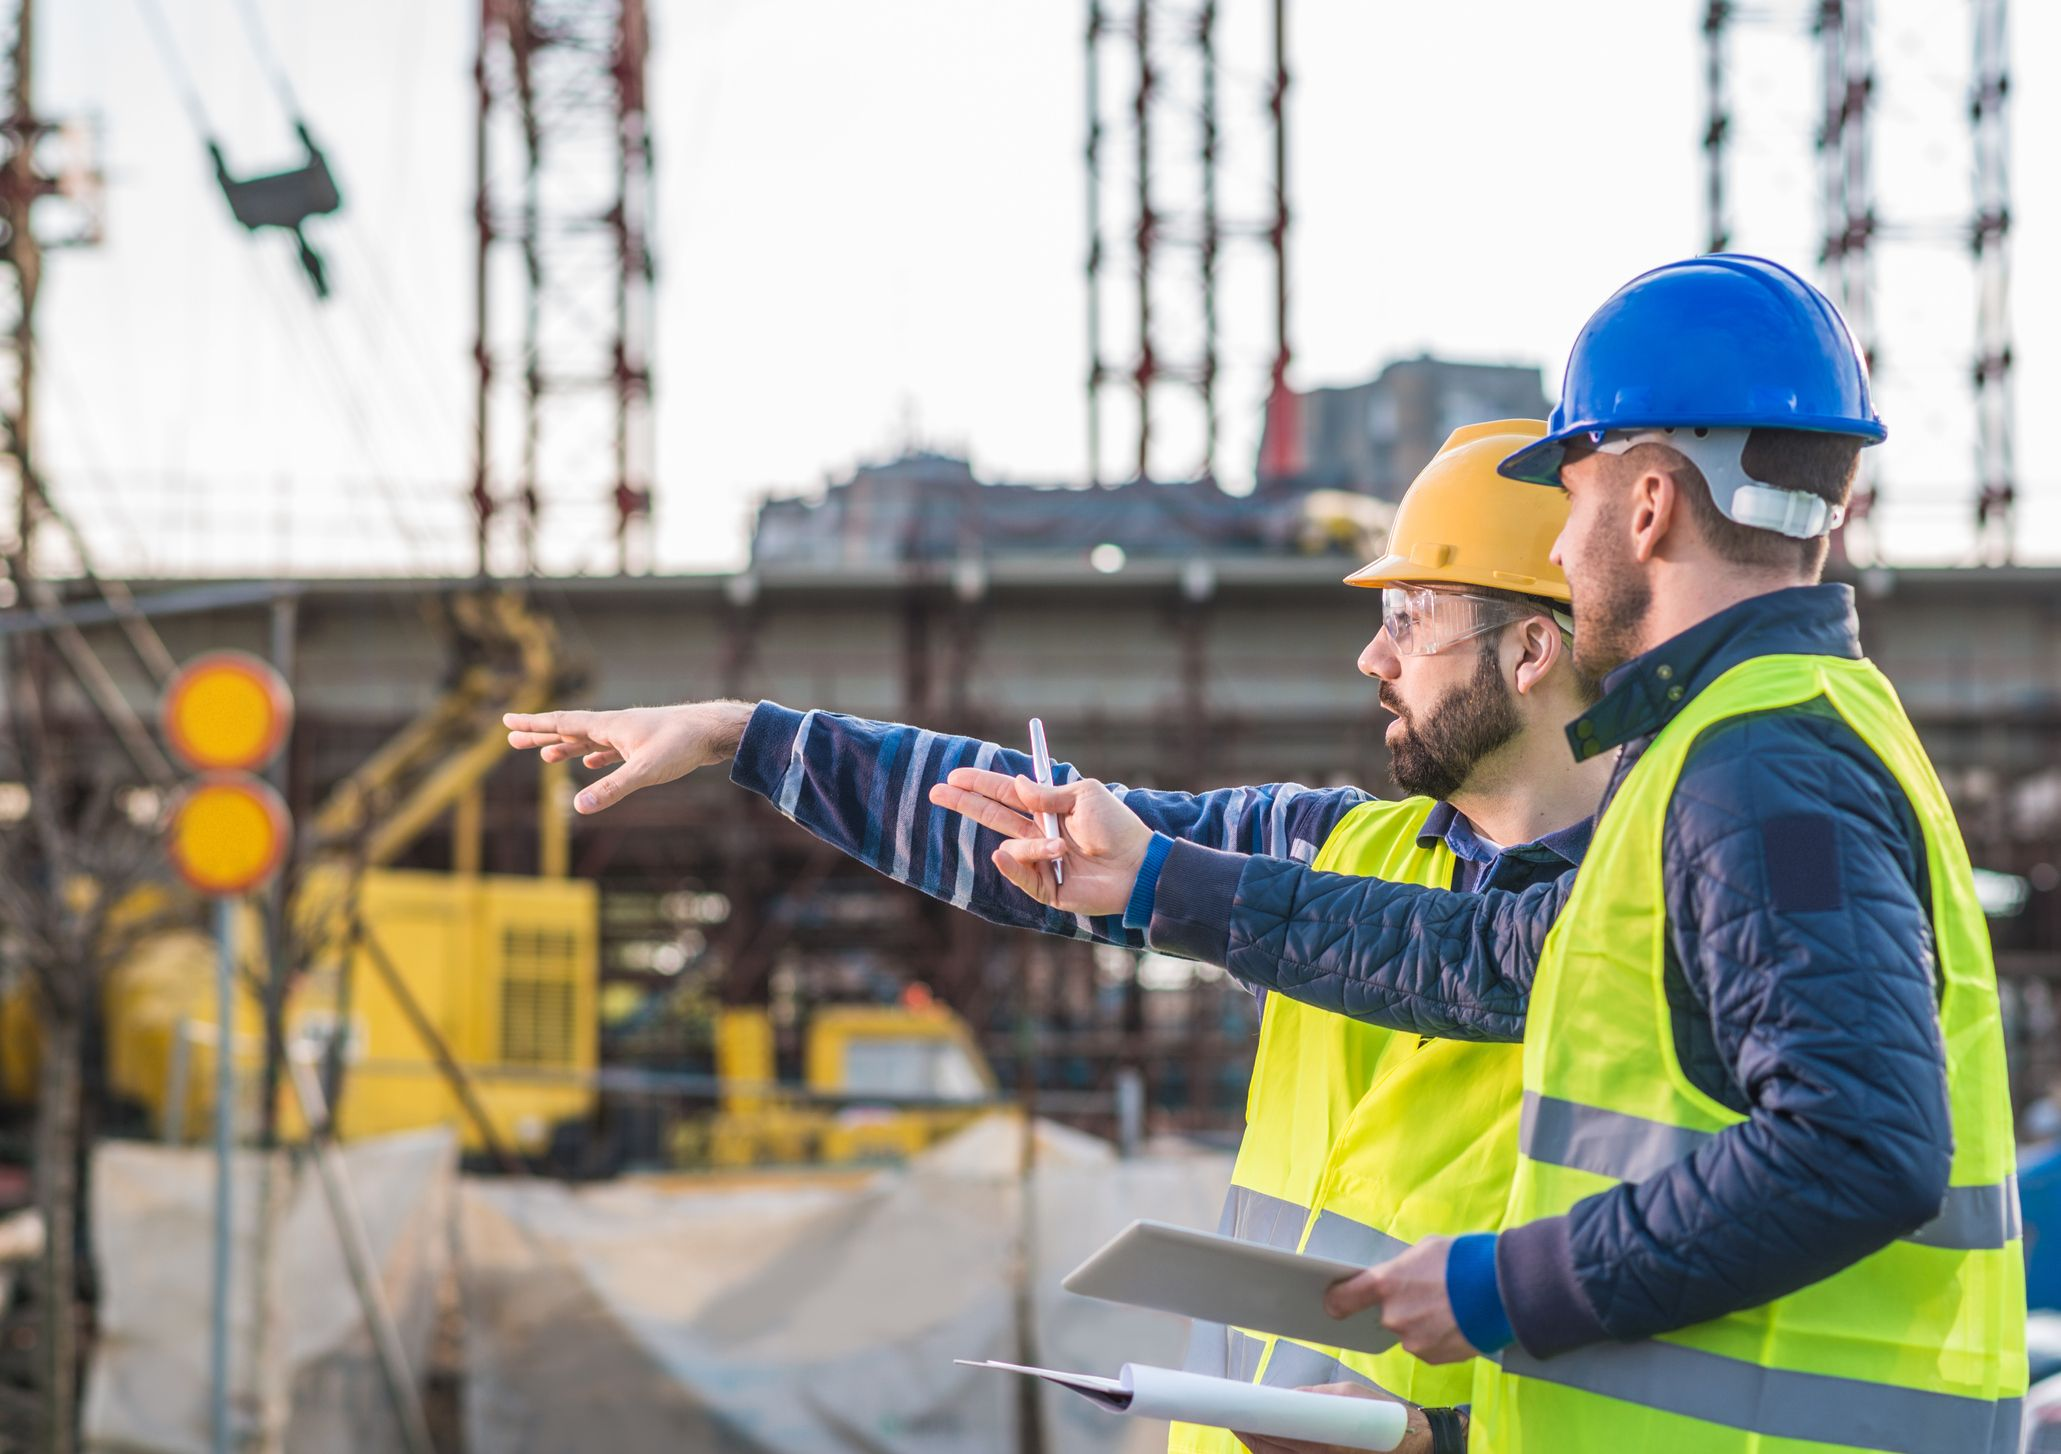 No matter the job site, effective listening is a critical skill